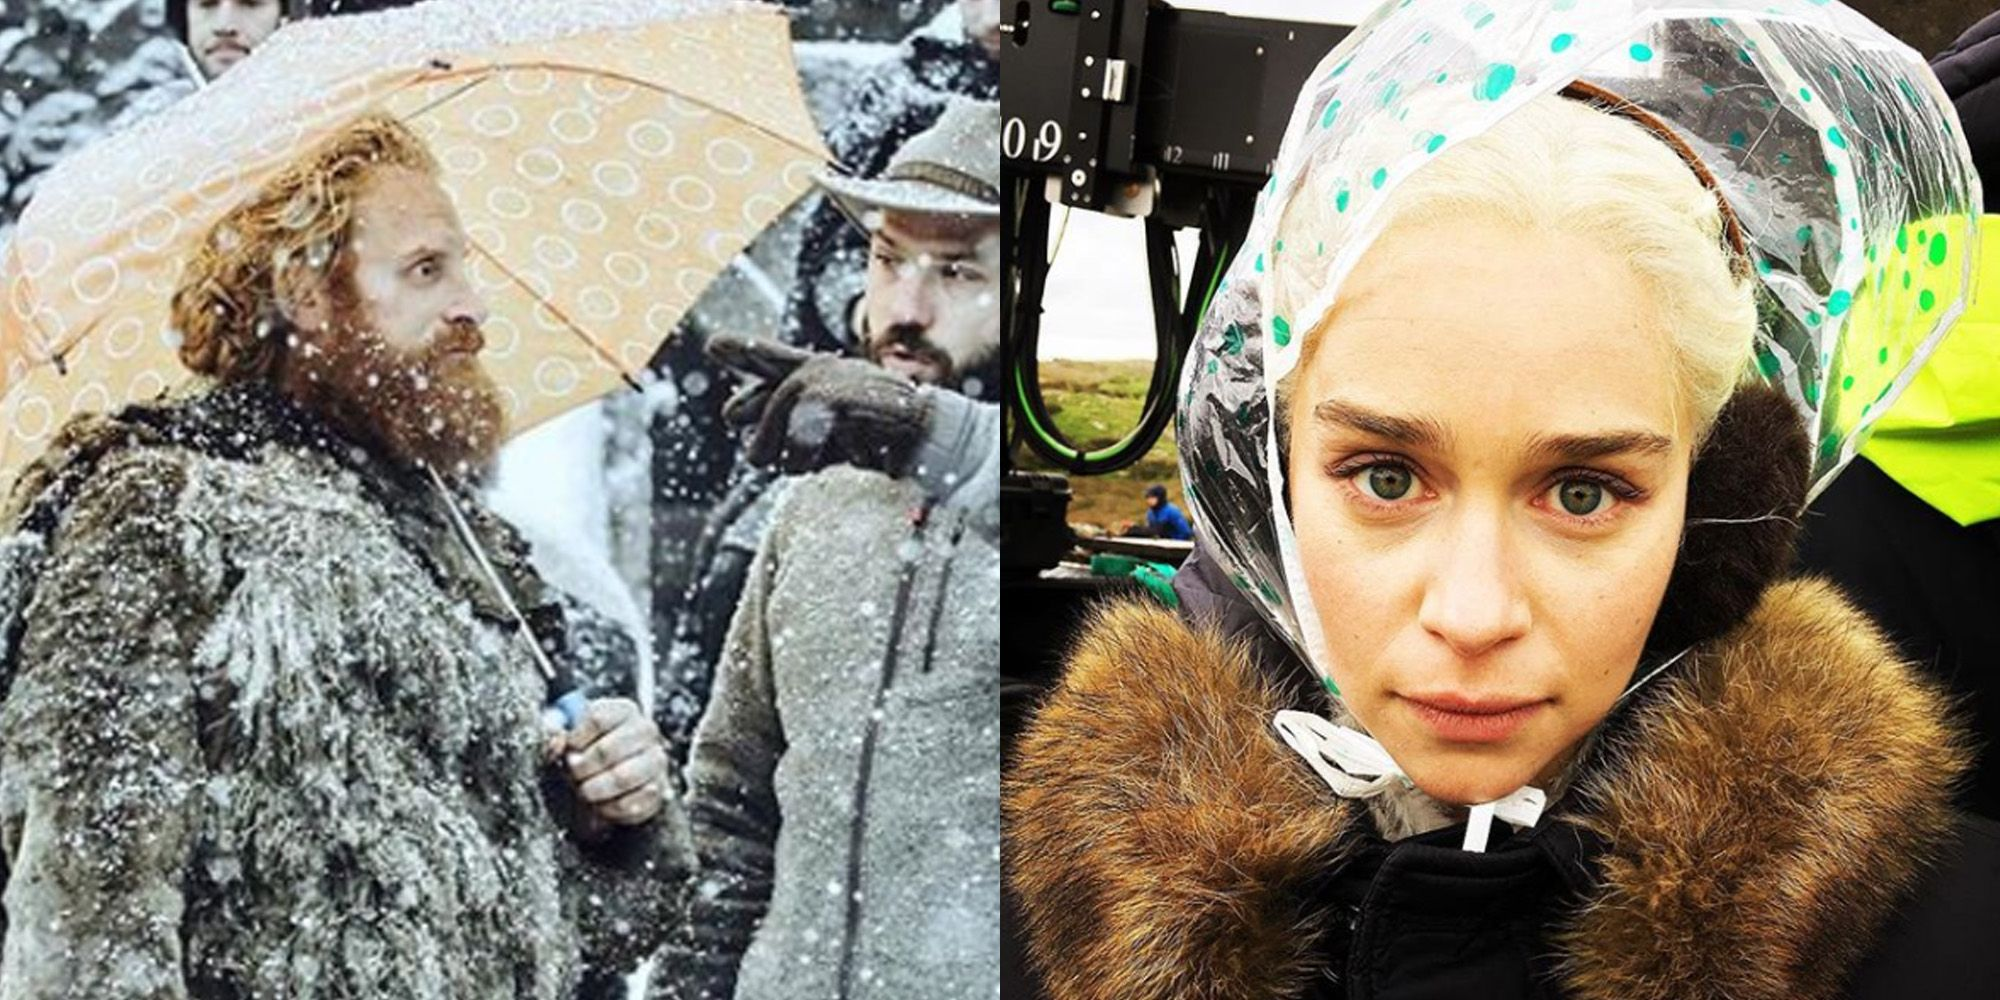 90 Behind-the-Scenes 'Game of Thrones' Pictures That Will Destroy the Magic for You